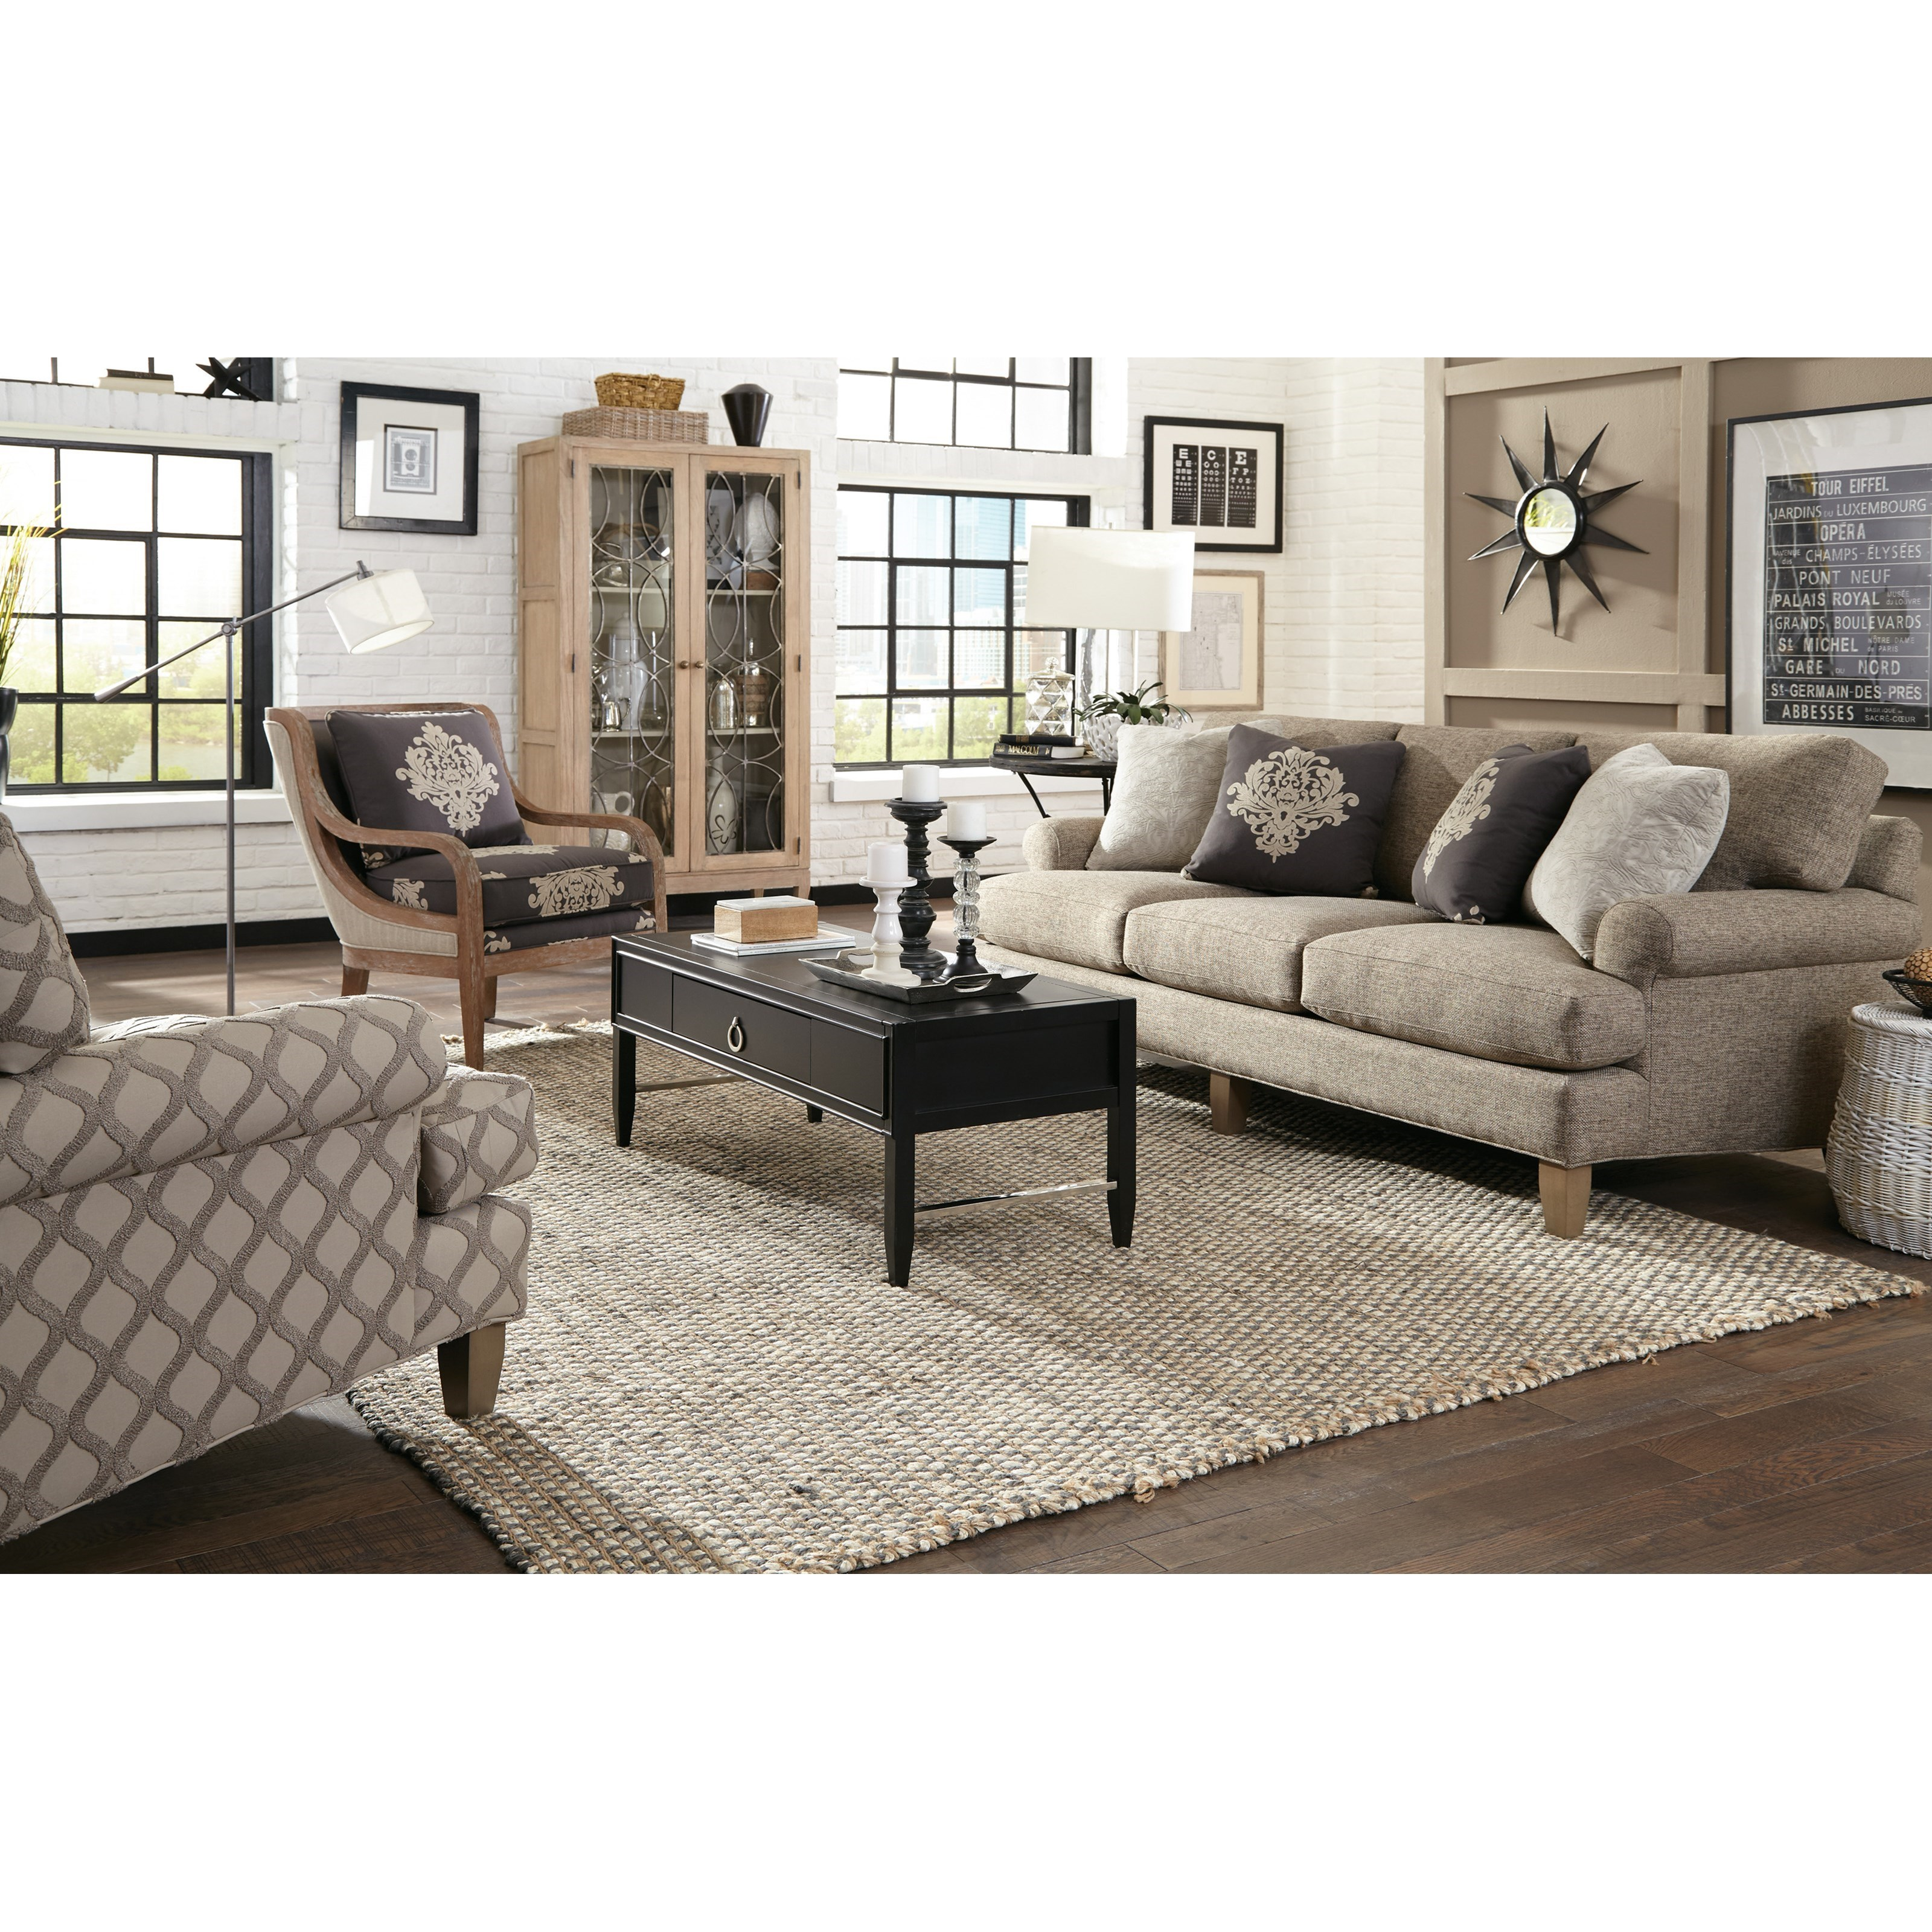 Craftmaster 067410 067510 Accent Chair With Exposed Wood Trim In Weathered Oak Miskelly